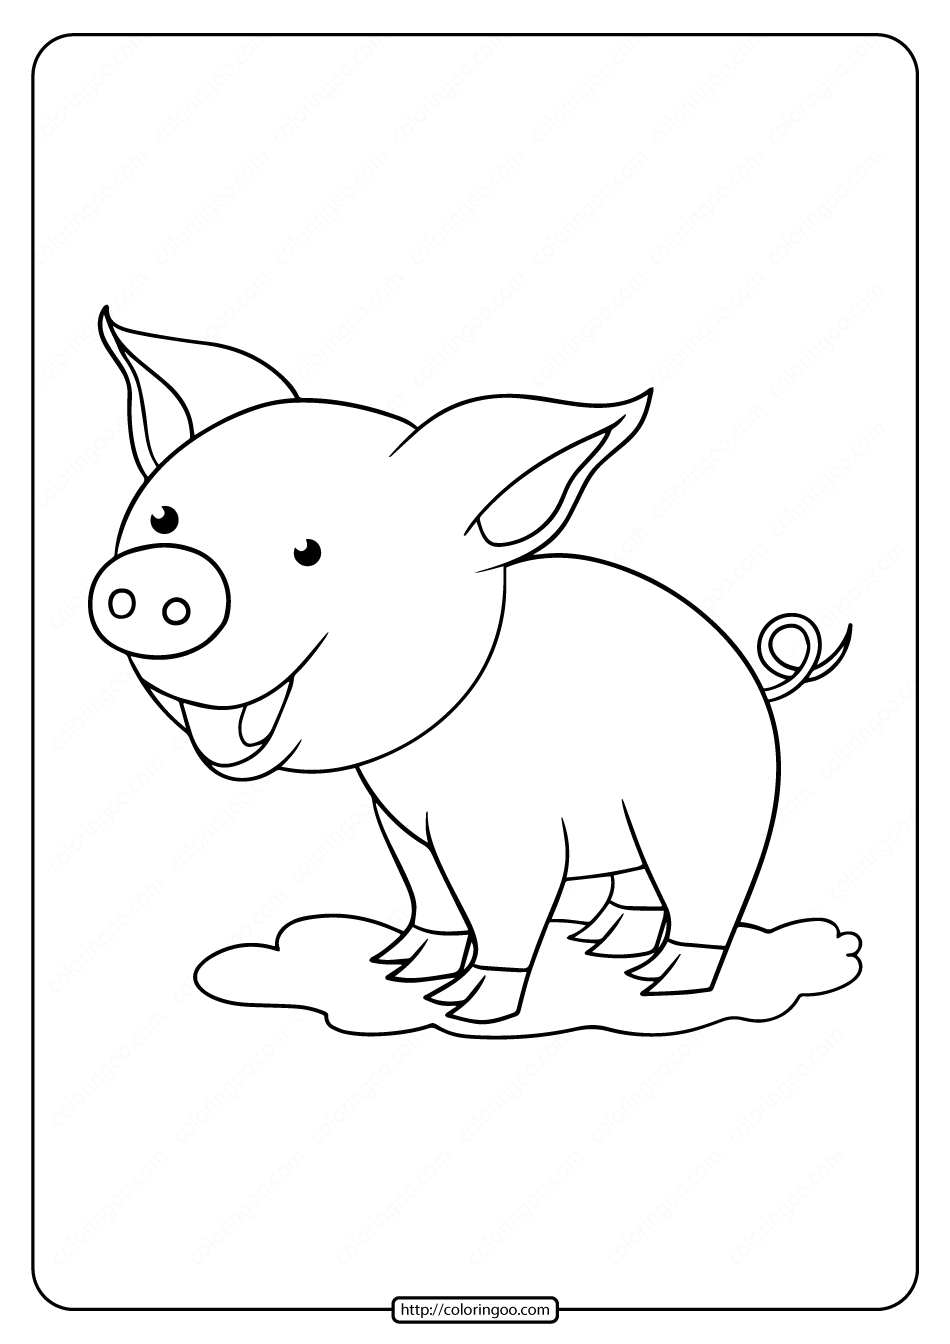 Printable Laughing Pig Coloring Page for Kids